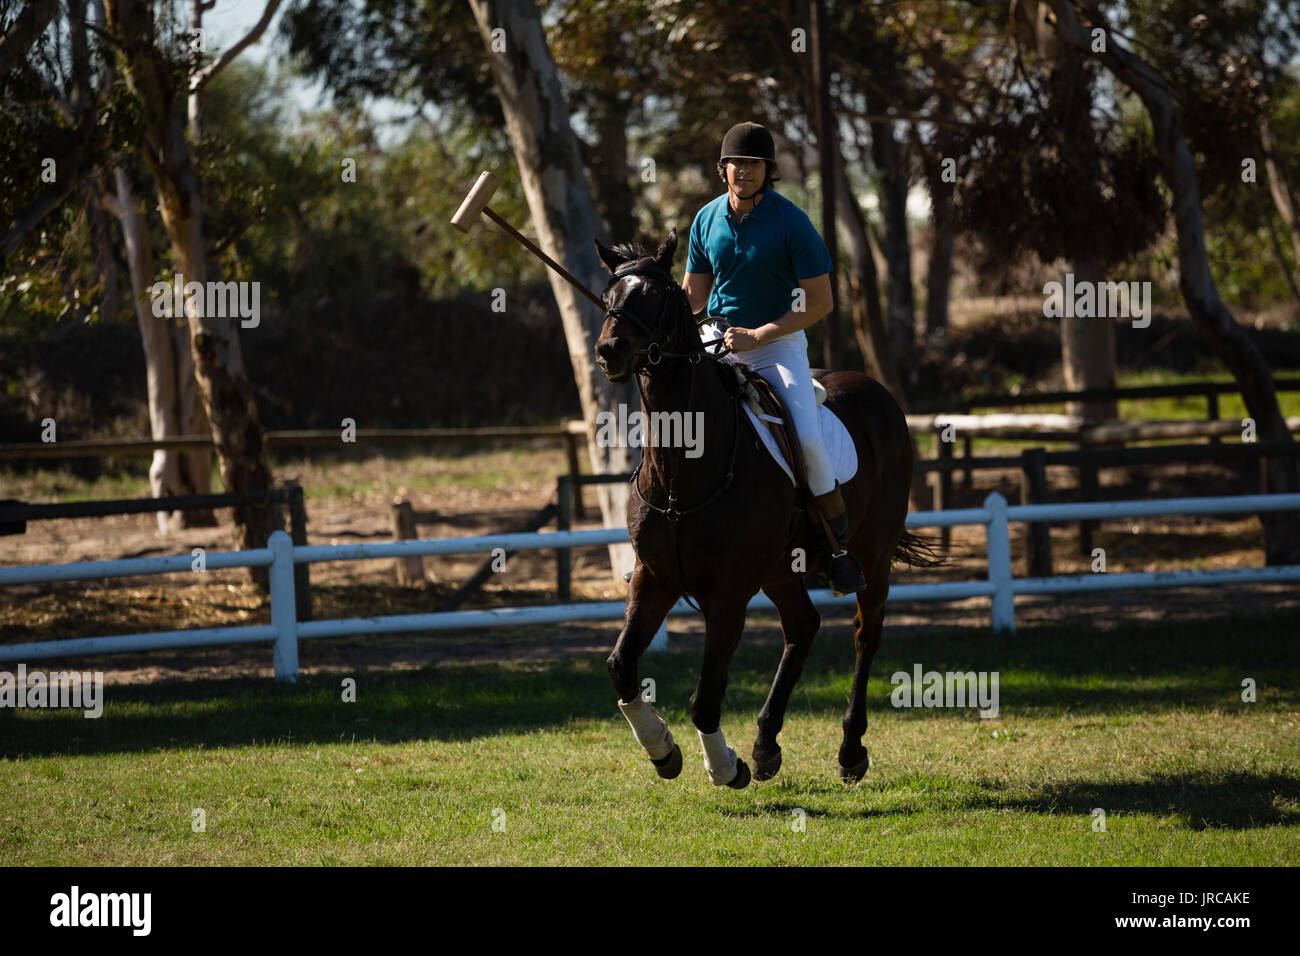 Male jockey riding horse in the ranch on a sunny day - Stock Image